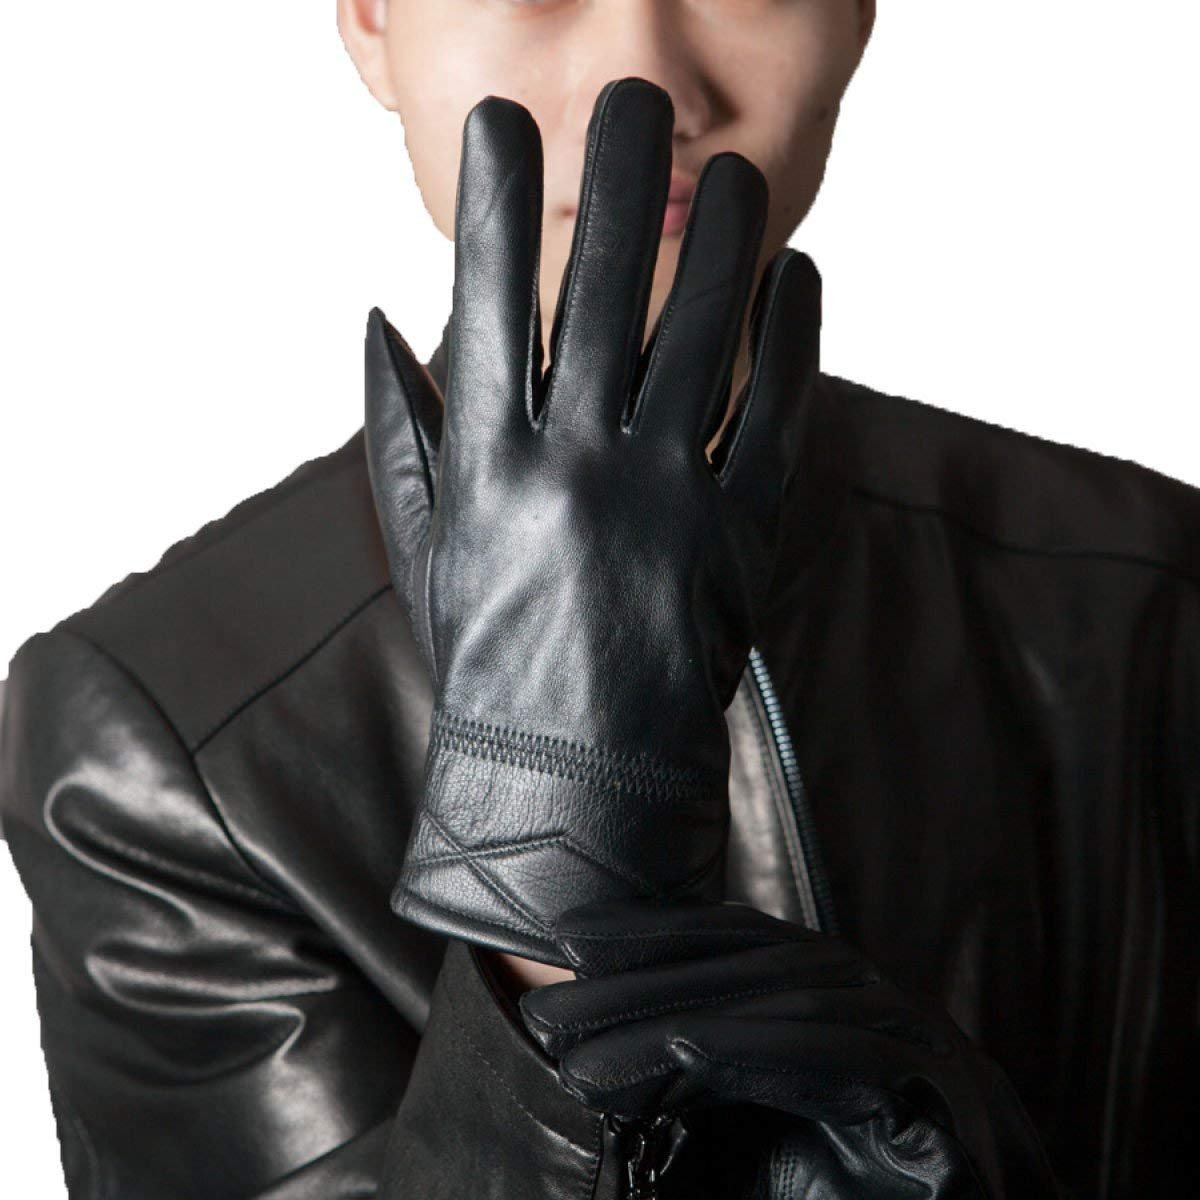 CWJ Gloves Men Warm Thickening Fashion,Black,One Size by CWJ (Image #1)